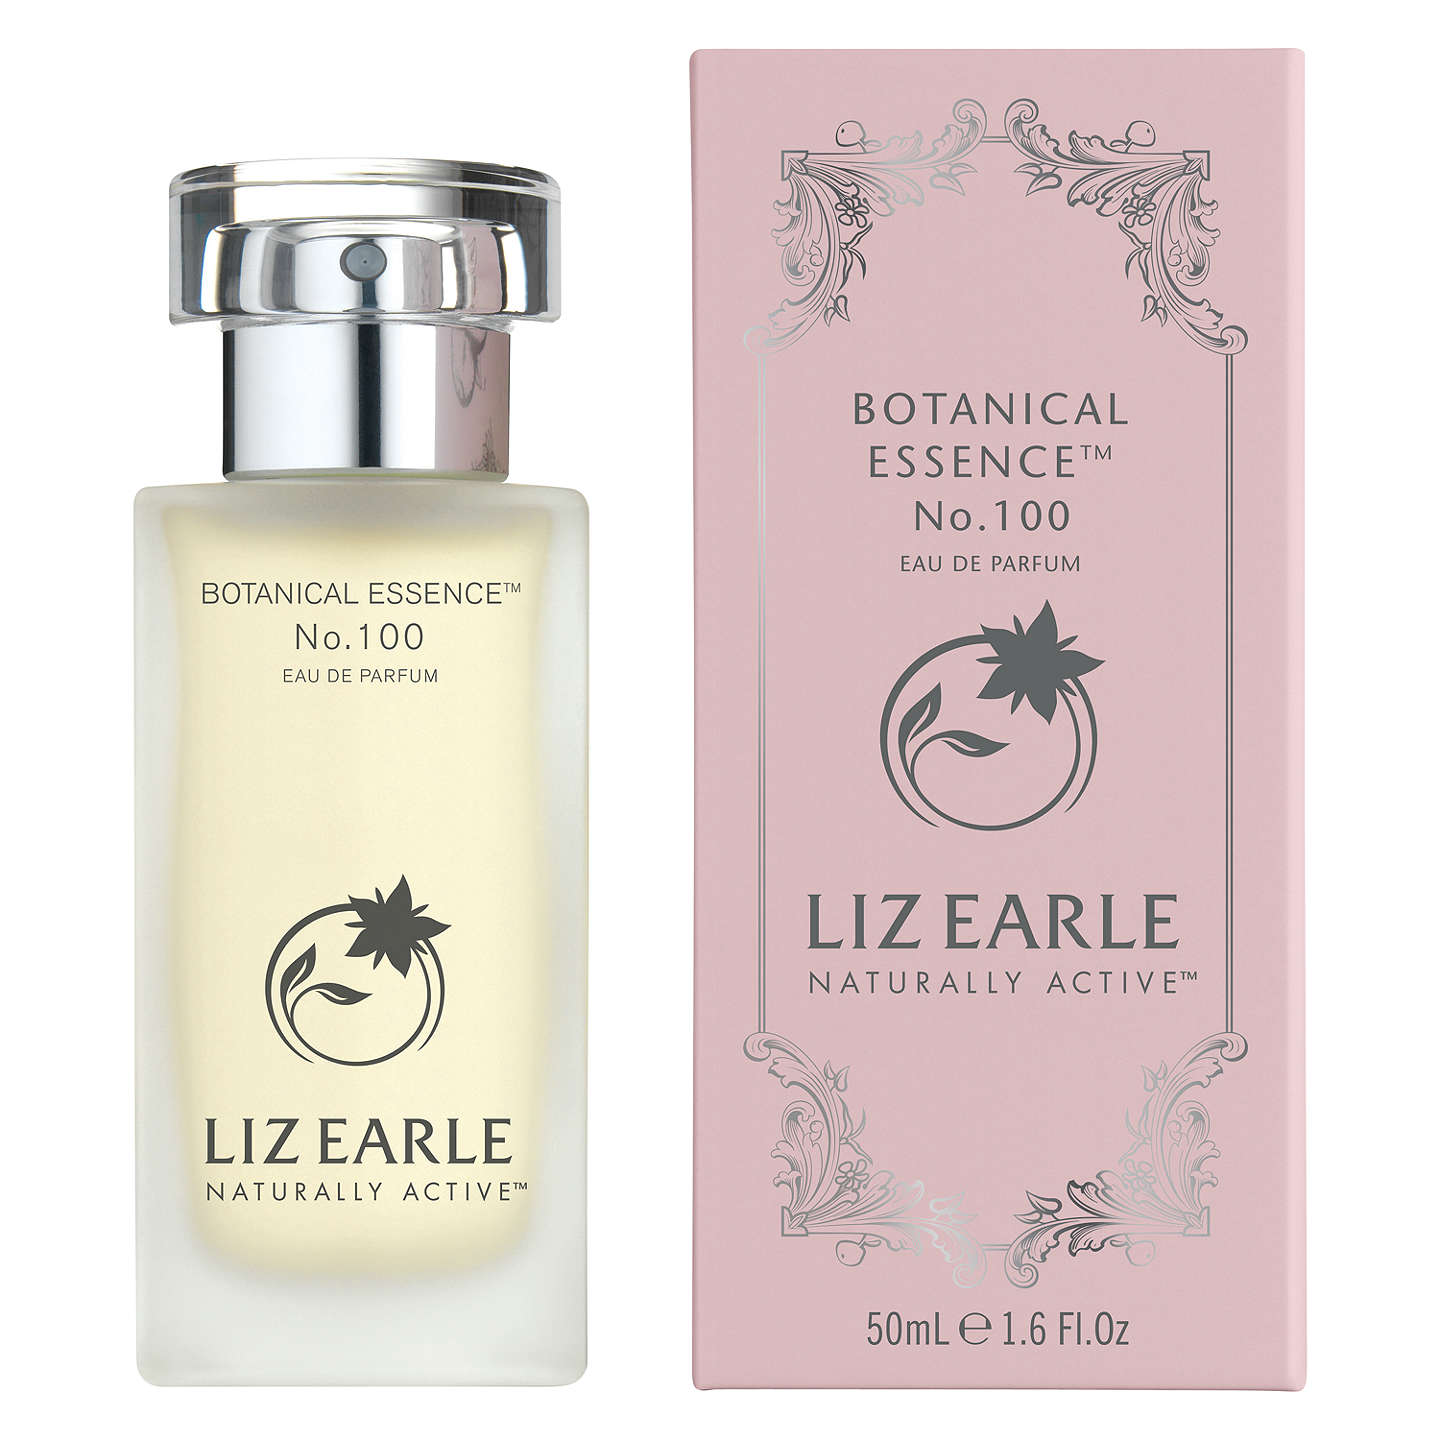 BuyLiz Earle Botanical Essence™ No.100, 50ml Online at johnlewis.com